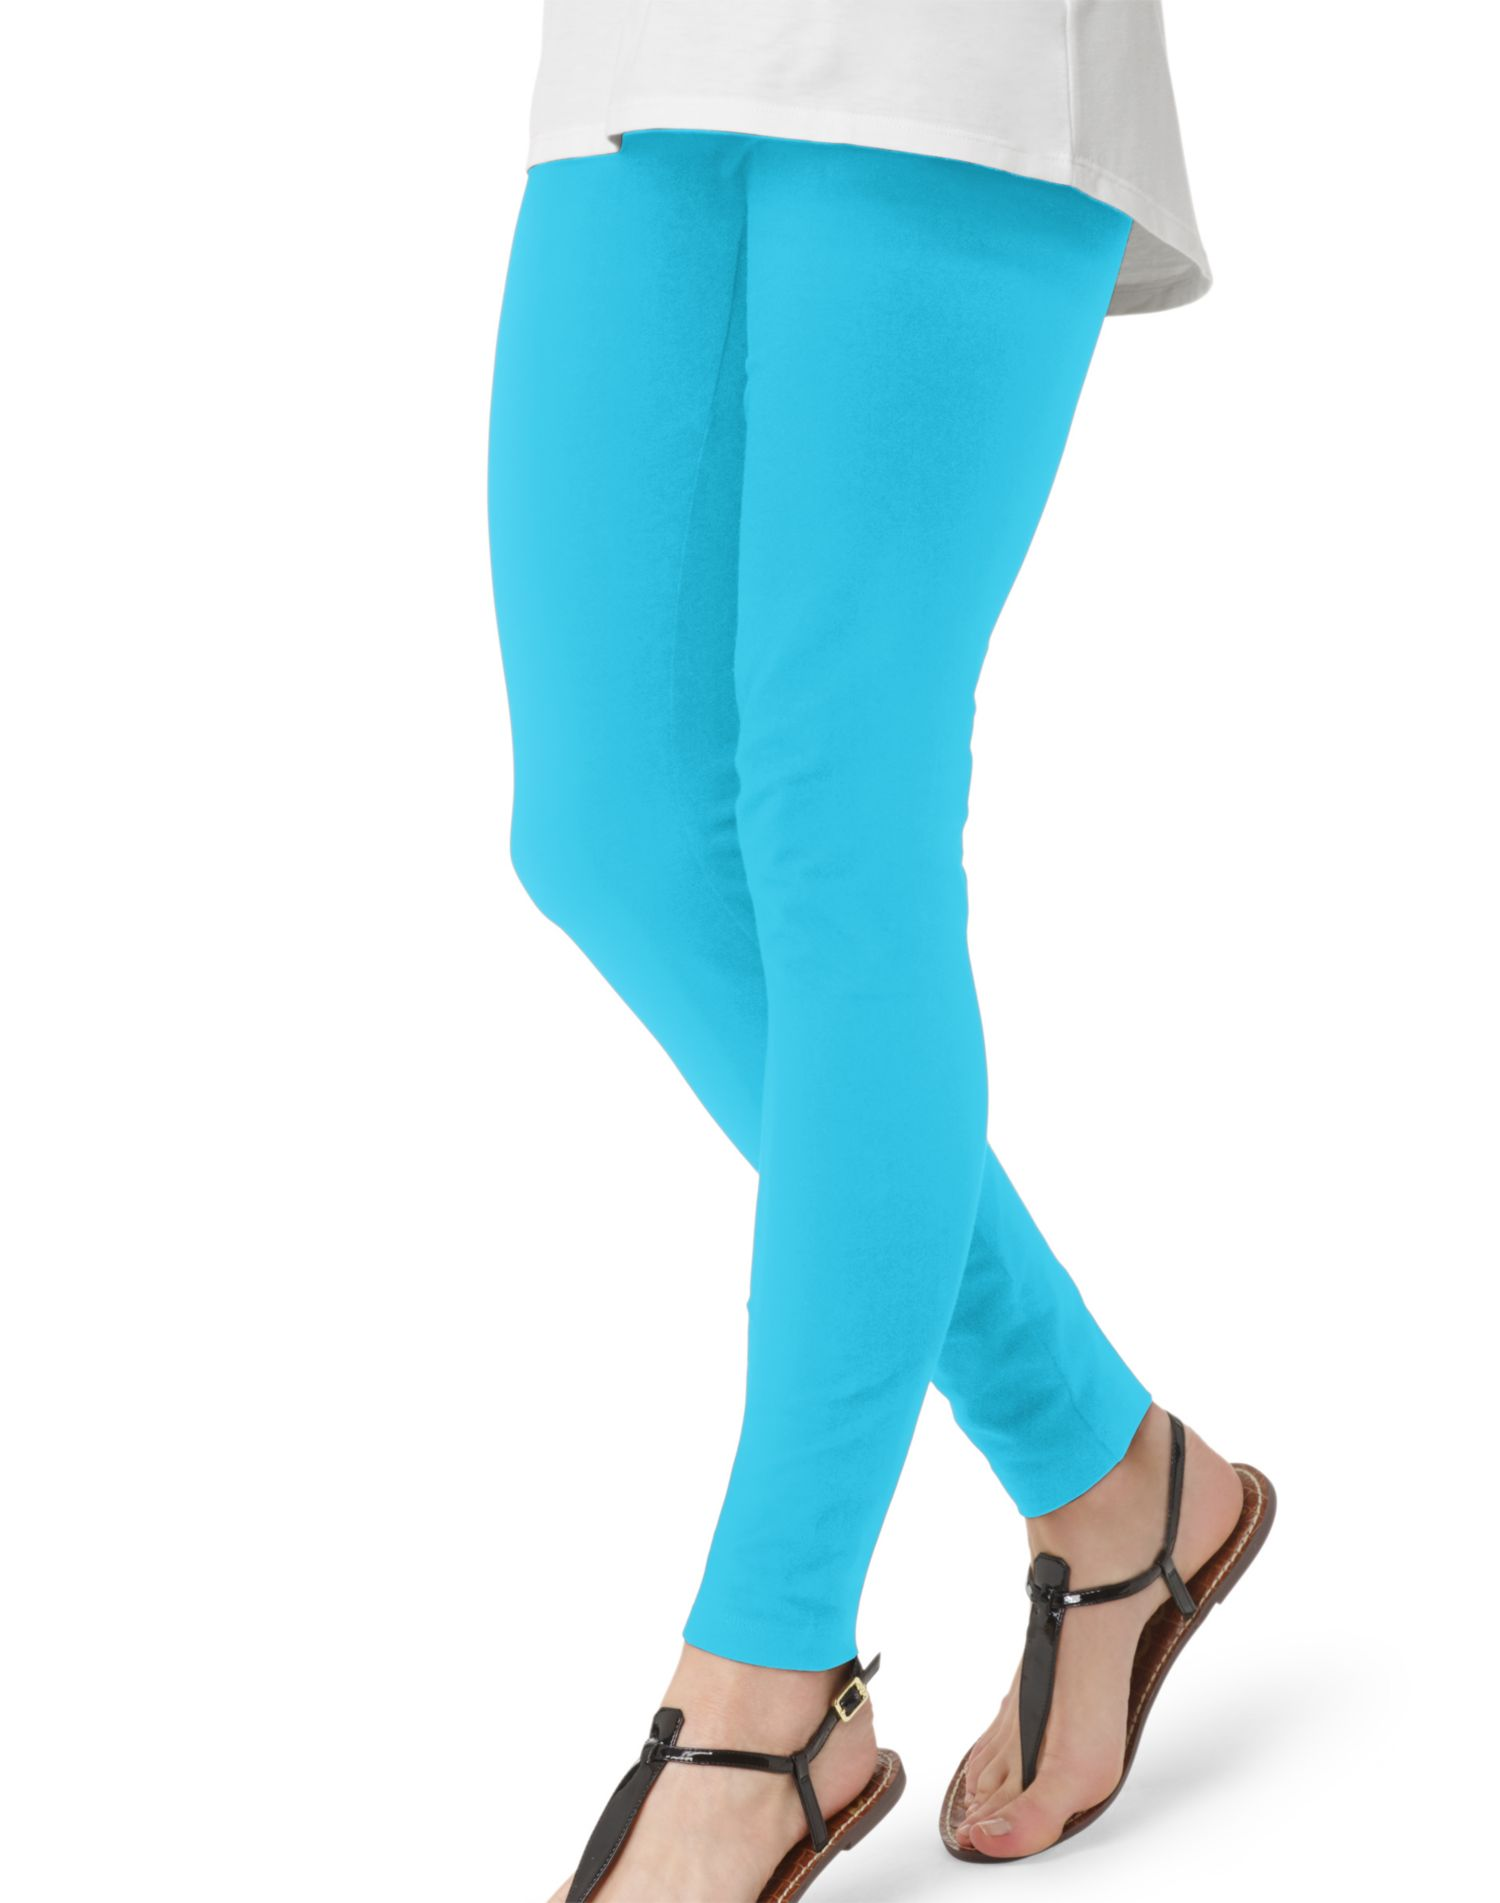 Overstock uses cookies to ensure you get the best experience on our site. Simply Ravishing Yoga Pants Cotton Fold Over Waist Boot Cut (Size: S-3X) 27 Reviews. Quick View White Mark Women's Cotton and Spandex Leggings. Reviews. Buyer's Pick. Quick View. See Price in Cart.